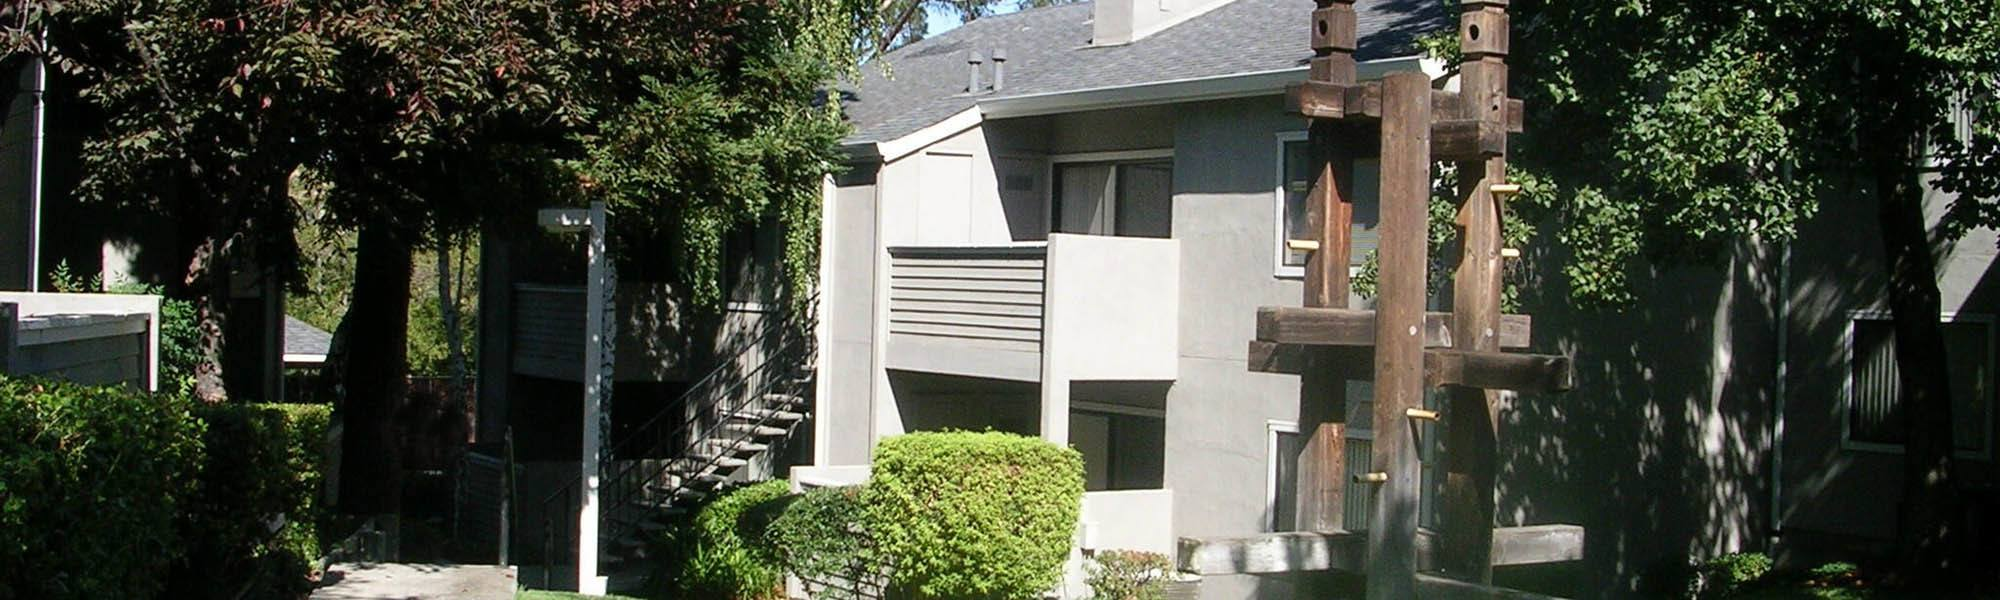 View photos of our luxurious property at Plum Tree Apartment Homes in Martinez, CA